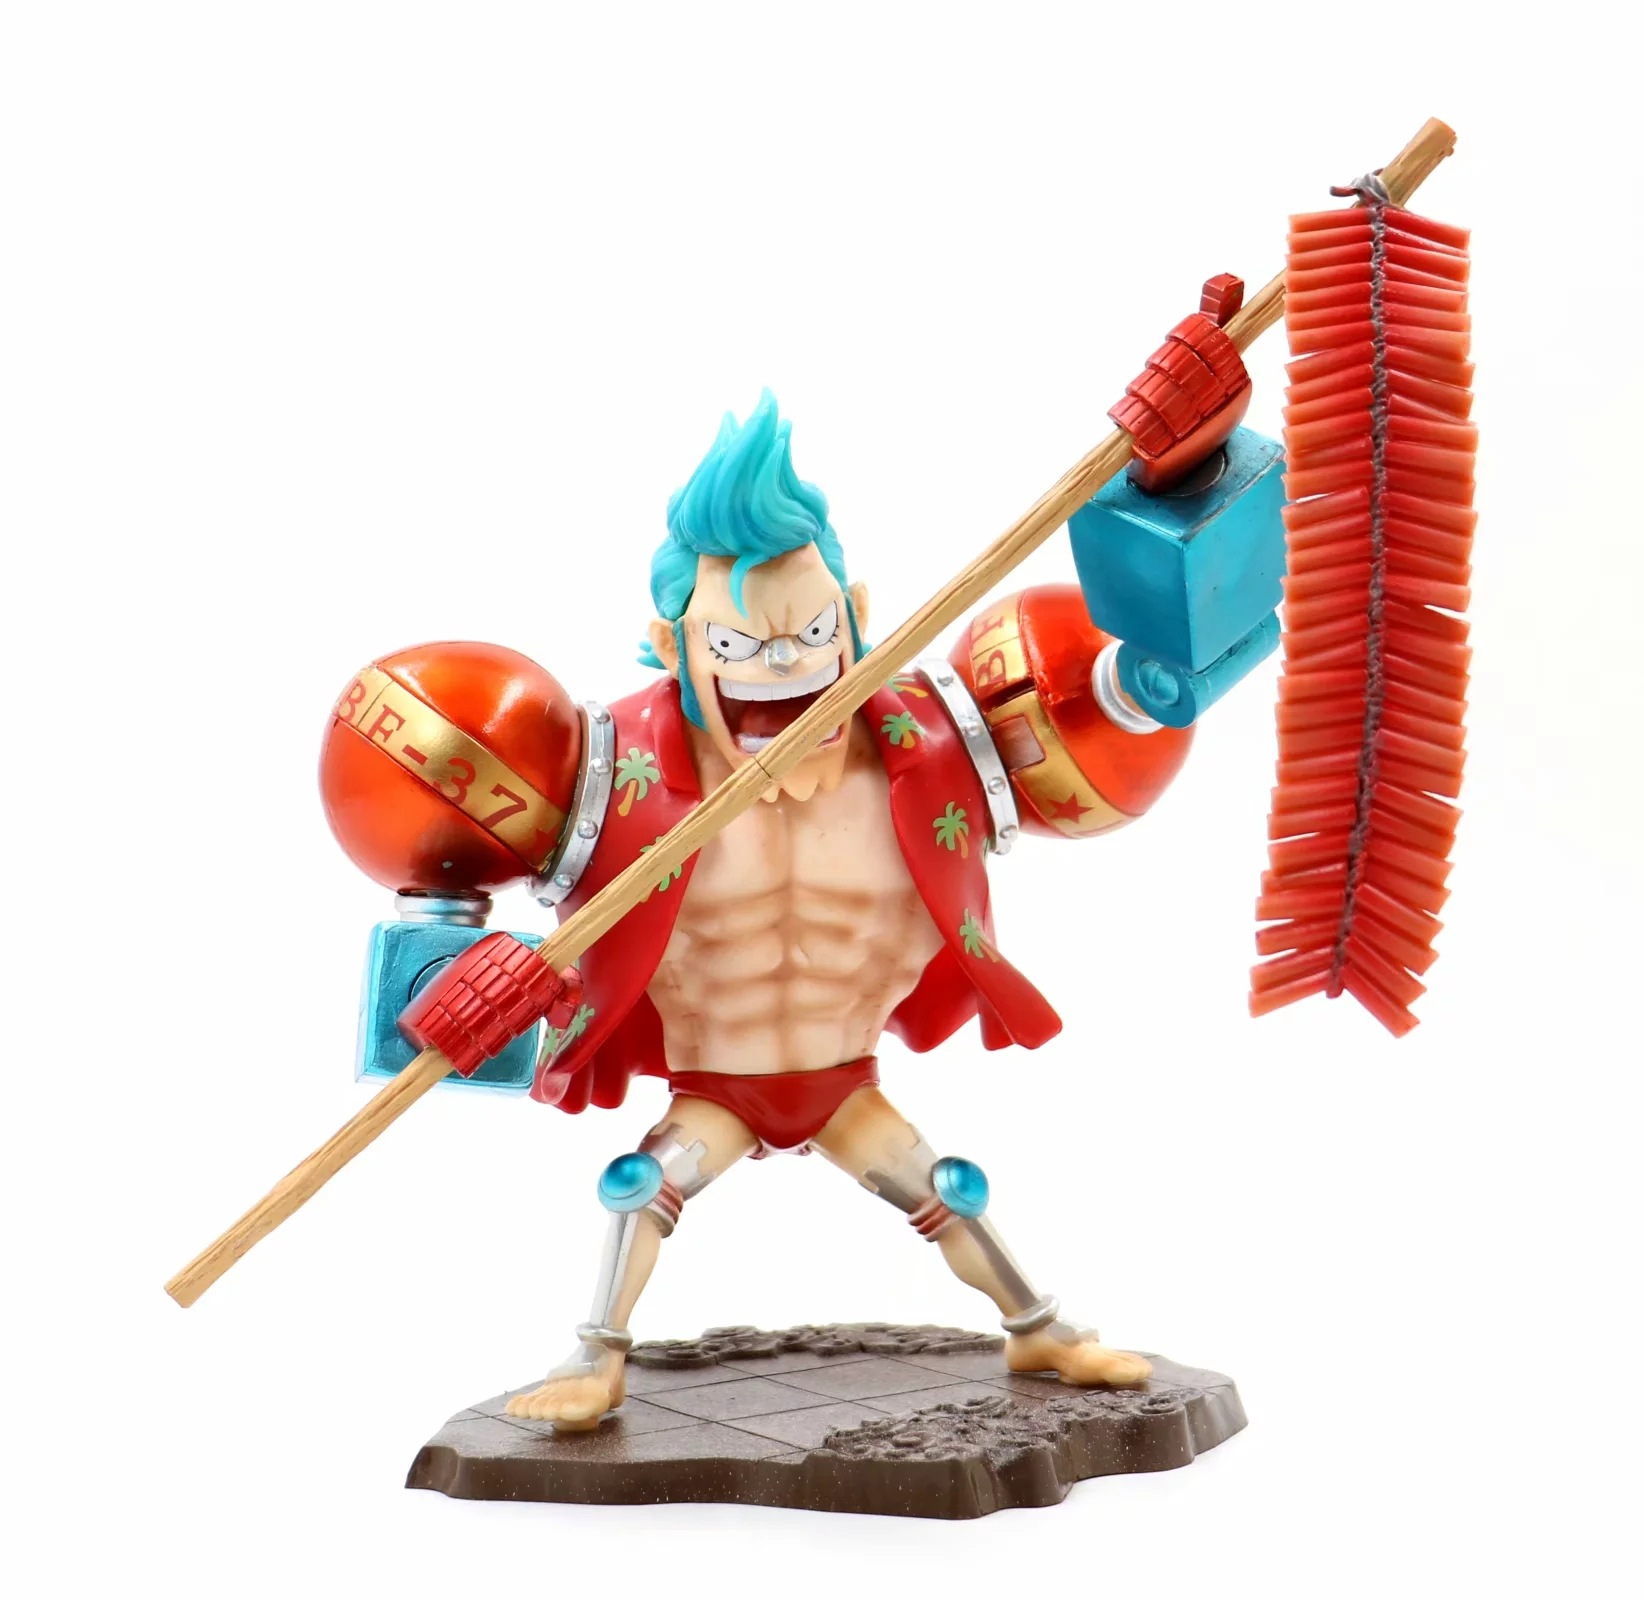 Pvc Figure Customers First Anime One Piece Monkey D Luffy Swollen Face Ver Toys & Hobbies